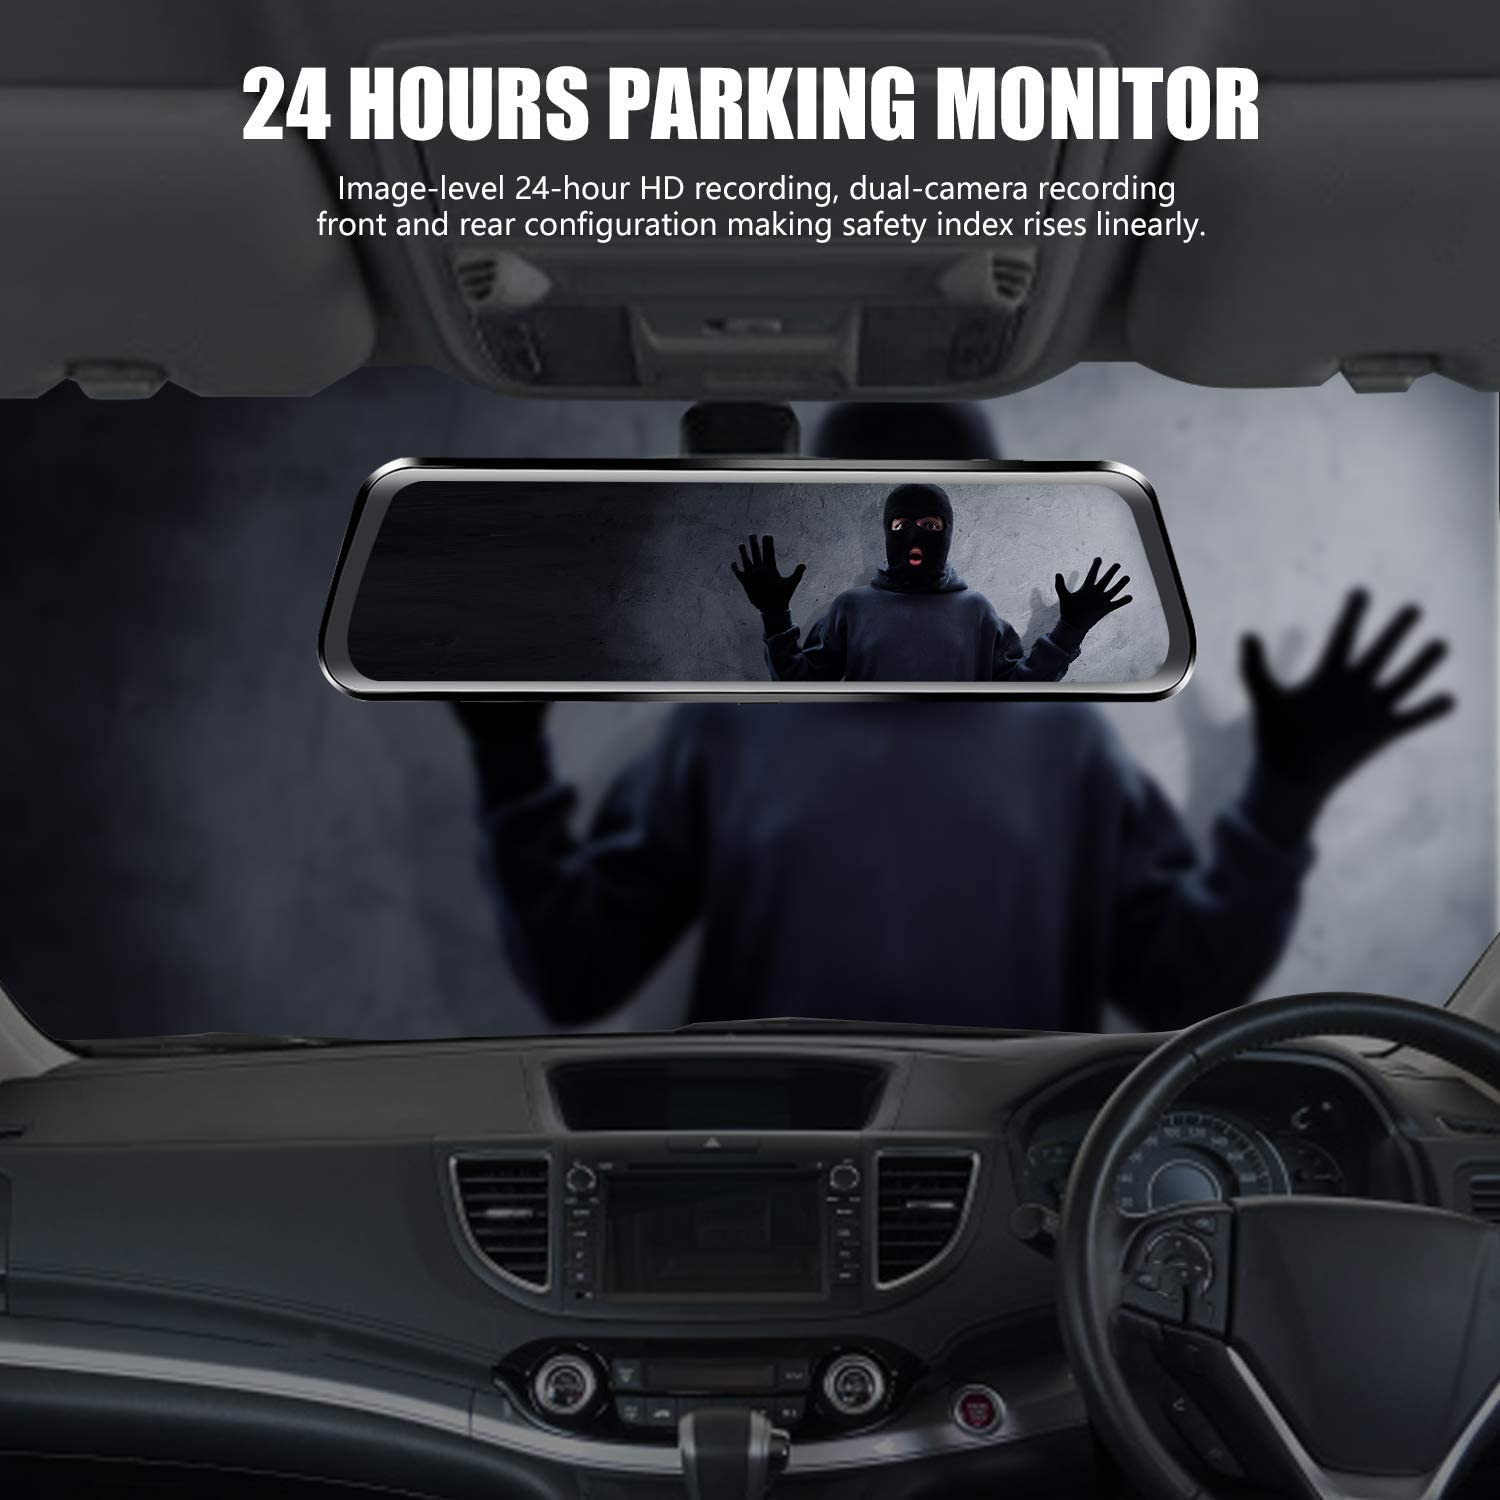 10 Mirror Dash Cam Backup Camera IPS Full Touch Screen 1080P Resolution Dual Lens,Rearview Backup Camera with Night Vision/&Reversing Assisting G-Sensor Parking Monitor